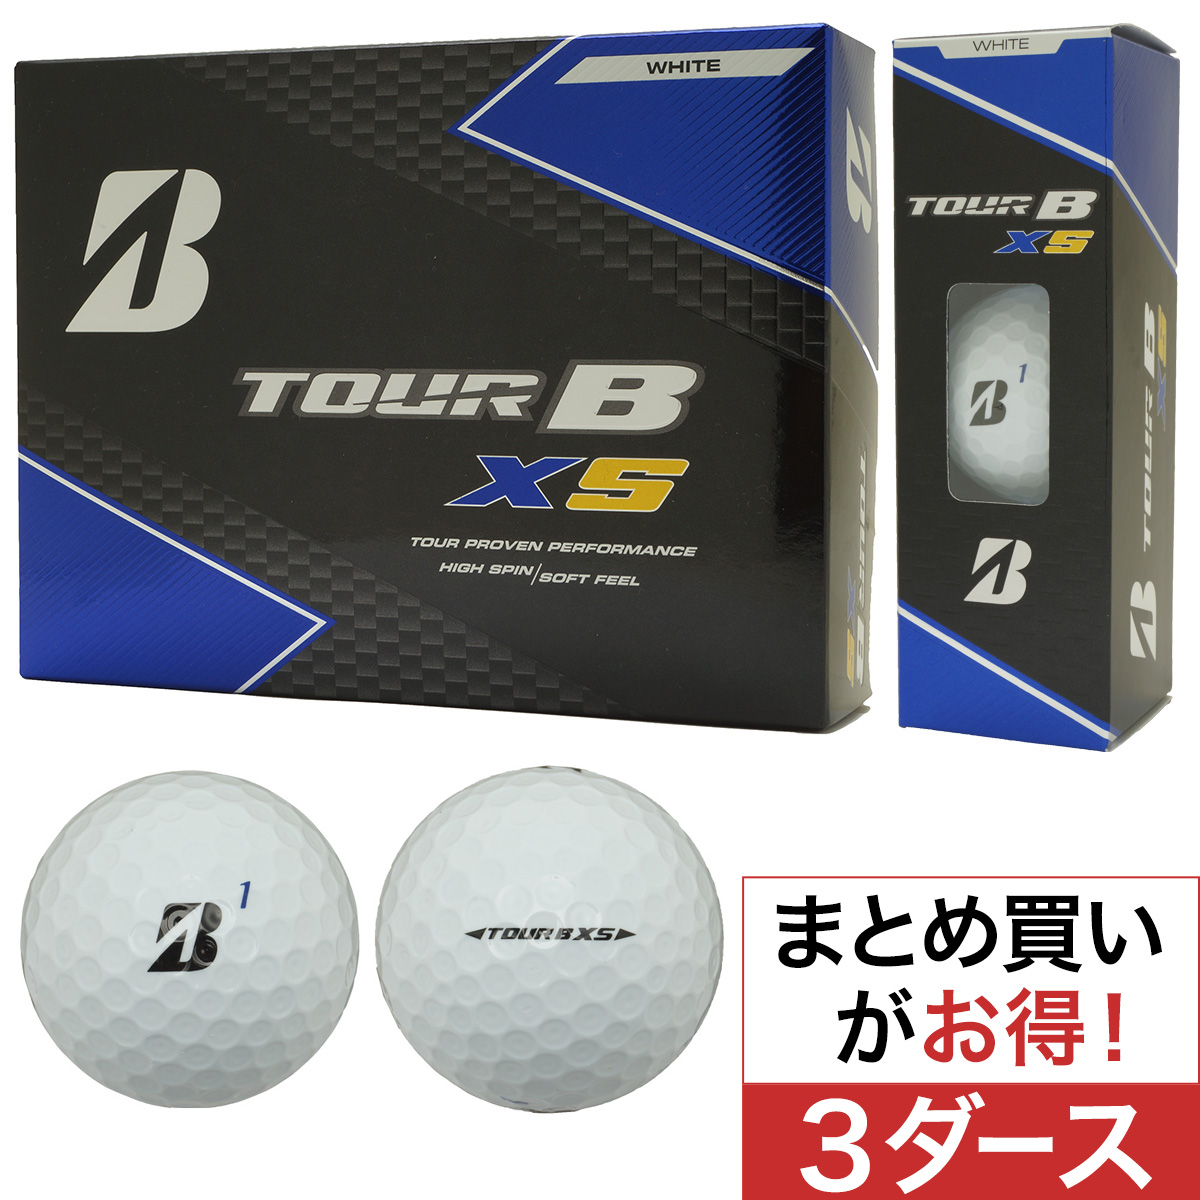 TOUR B XS Bマーク ボール 3ダースセット